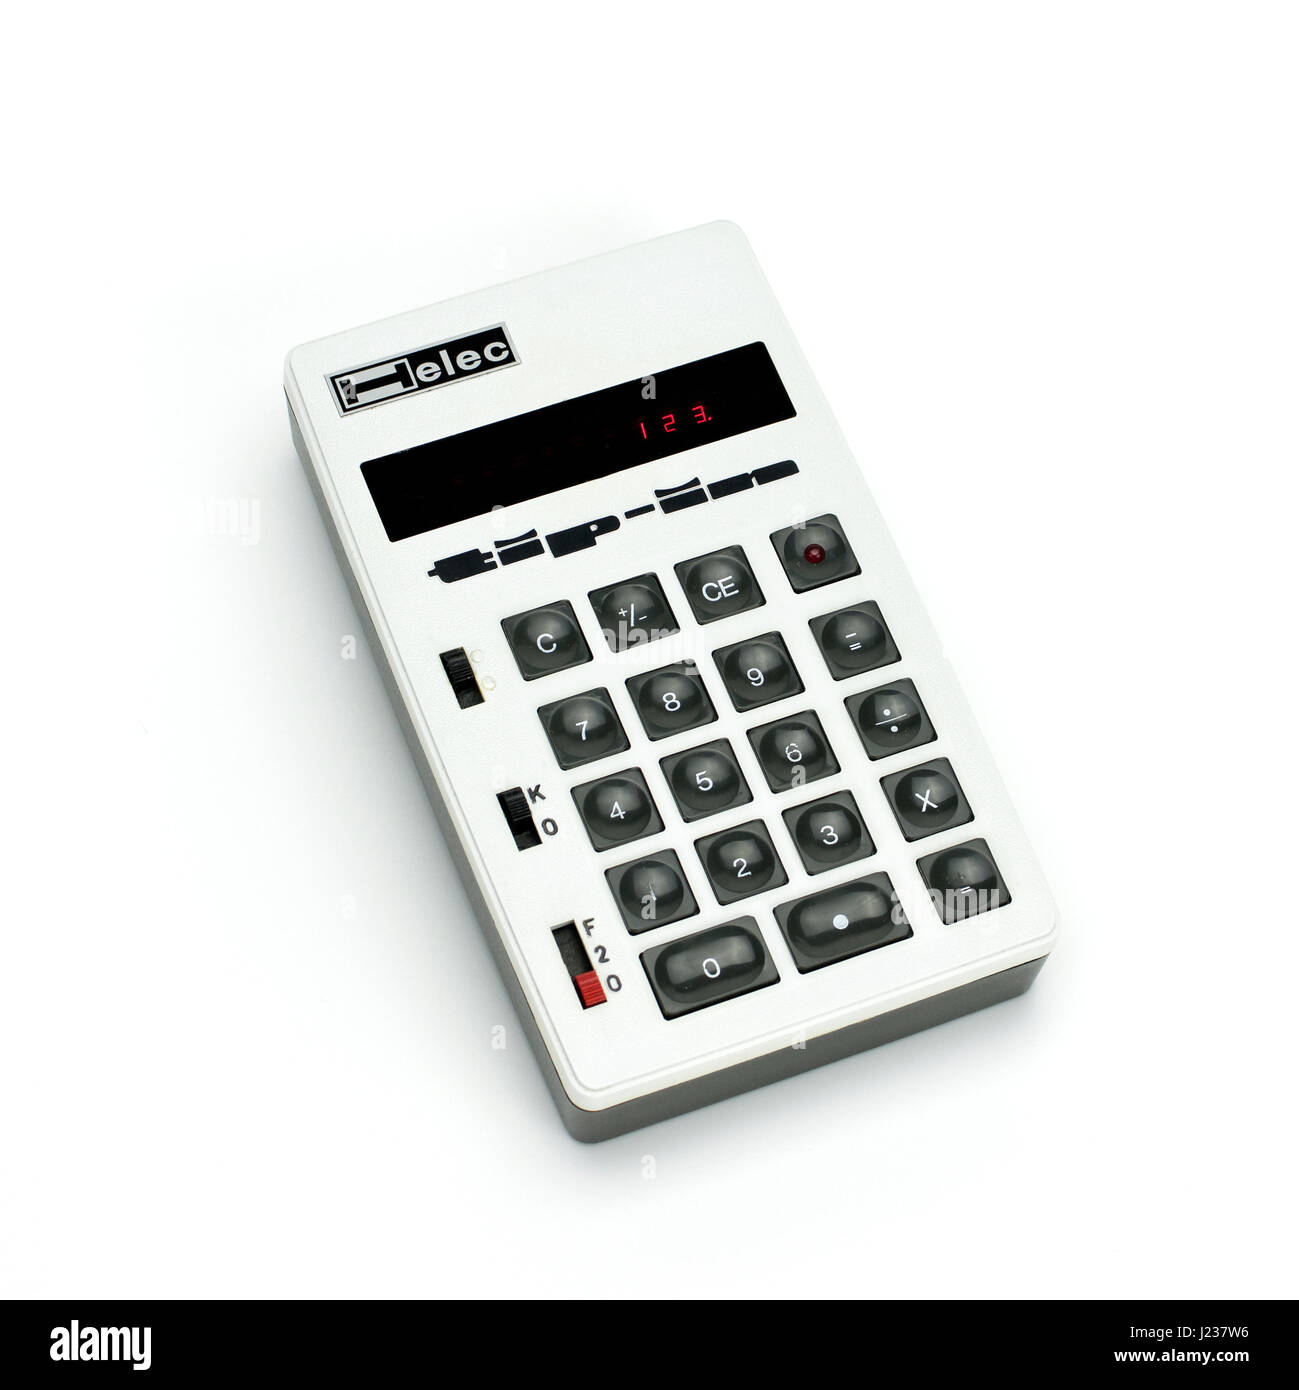 Vintage Calculator Stock Photos Images Circuitry Of An Electronic Royalty Free Photography Image